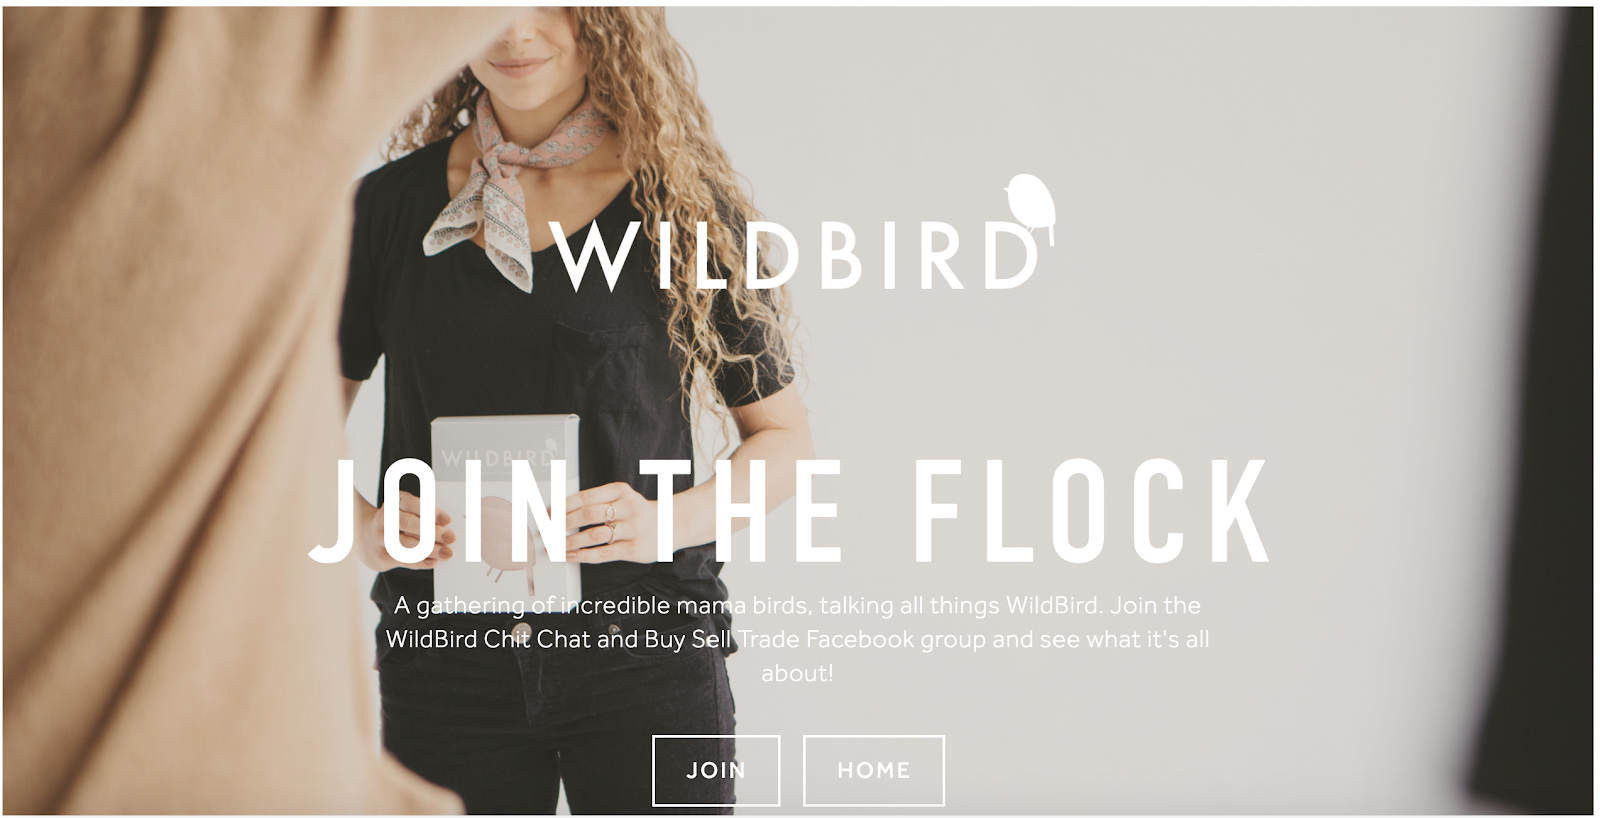 Wildbird-Screenshot